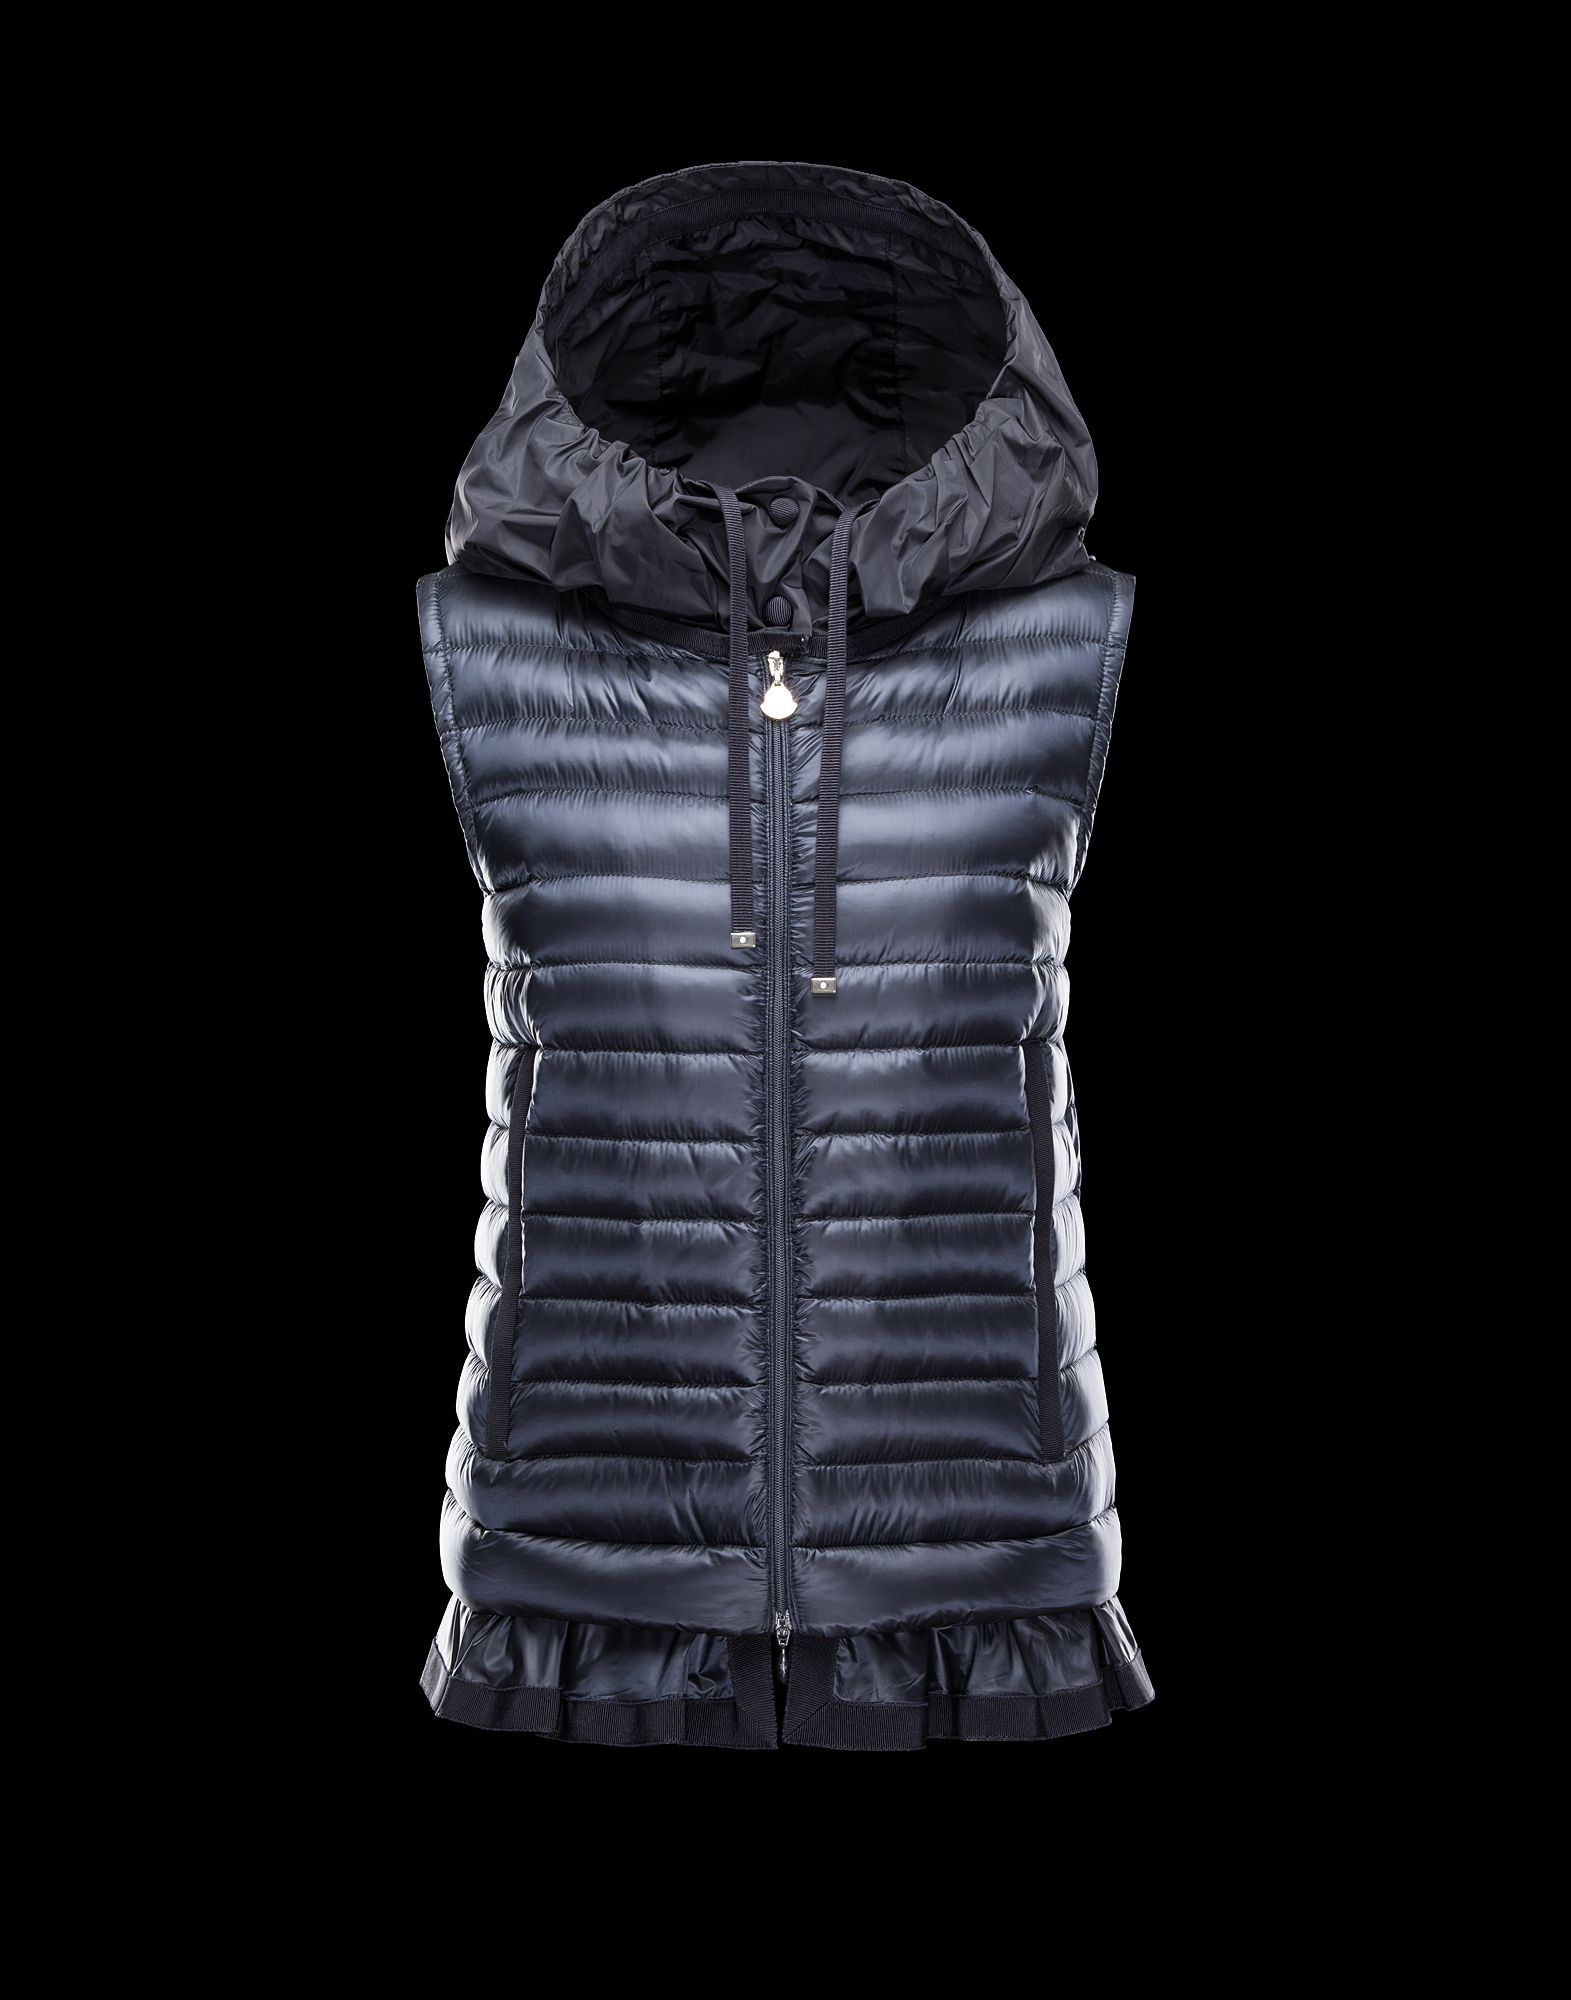 8a6637bfc Waistcoat Women Moncler - Original products on store.moncler.com ...